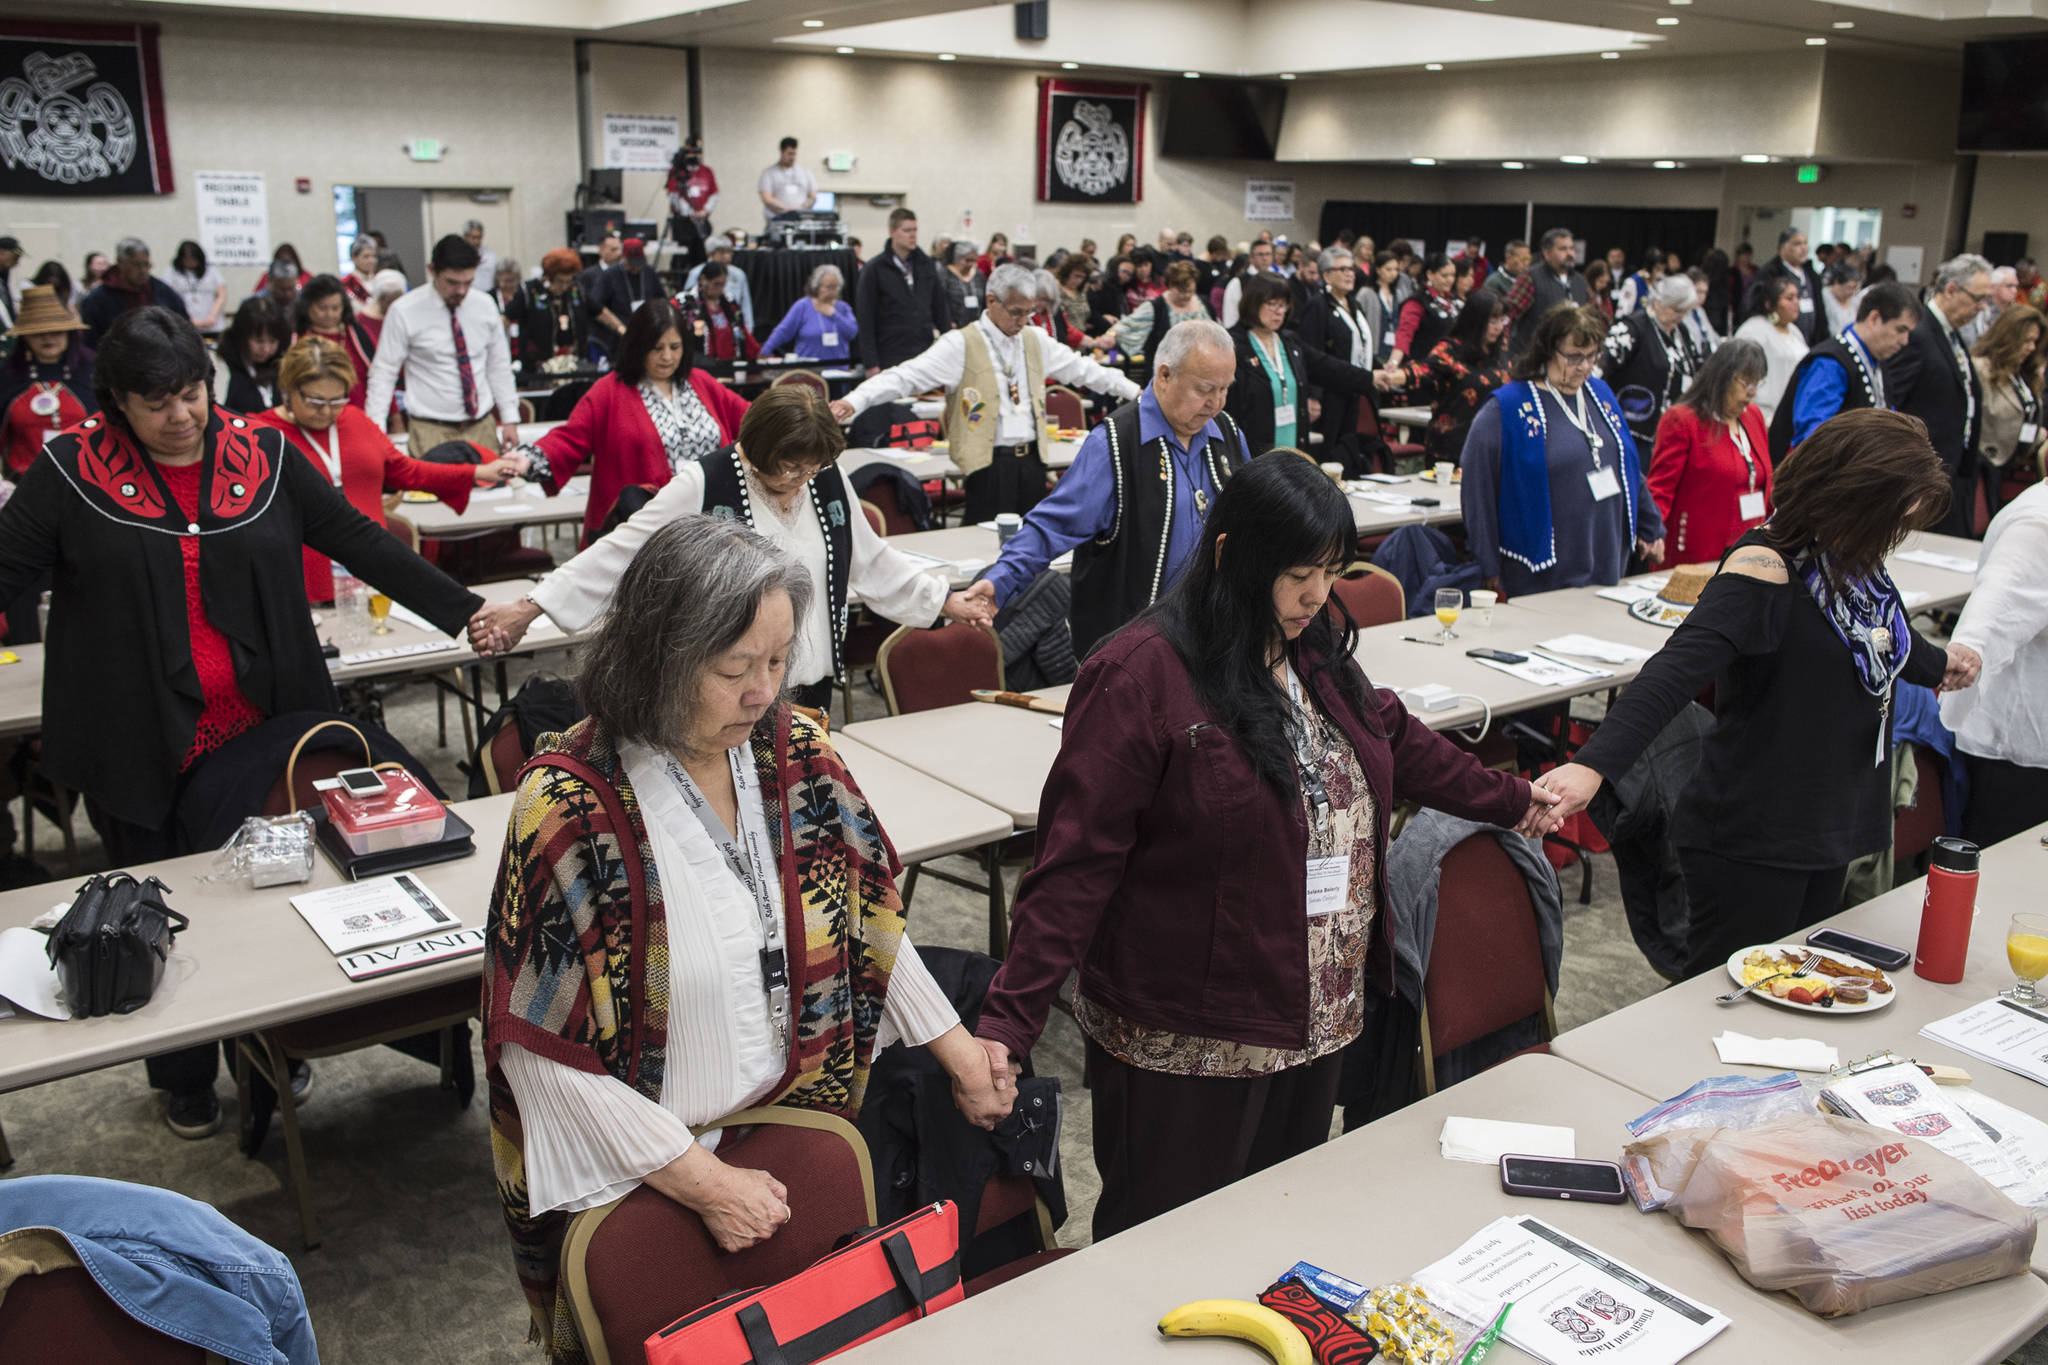 Deleagates listen to the invocation during the opening of the 84th annual Tribal Assembly of the Central Council of Tlingit and Haida Indian Tribes of Alaska at the Elizabeth Peratrovich Hall on Wednesday, April 10, 2019. (Michael Penn | Juneau Empire)